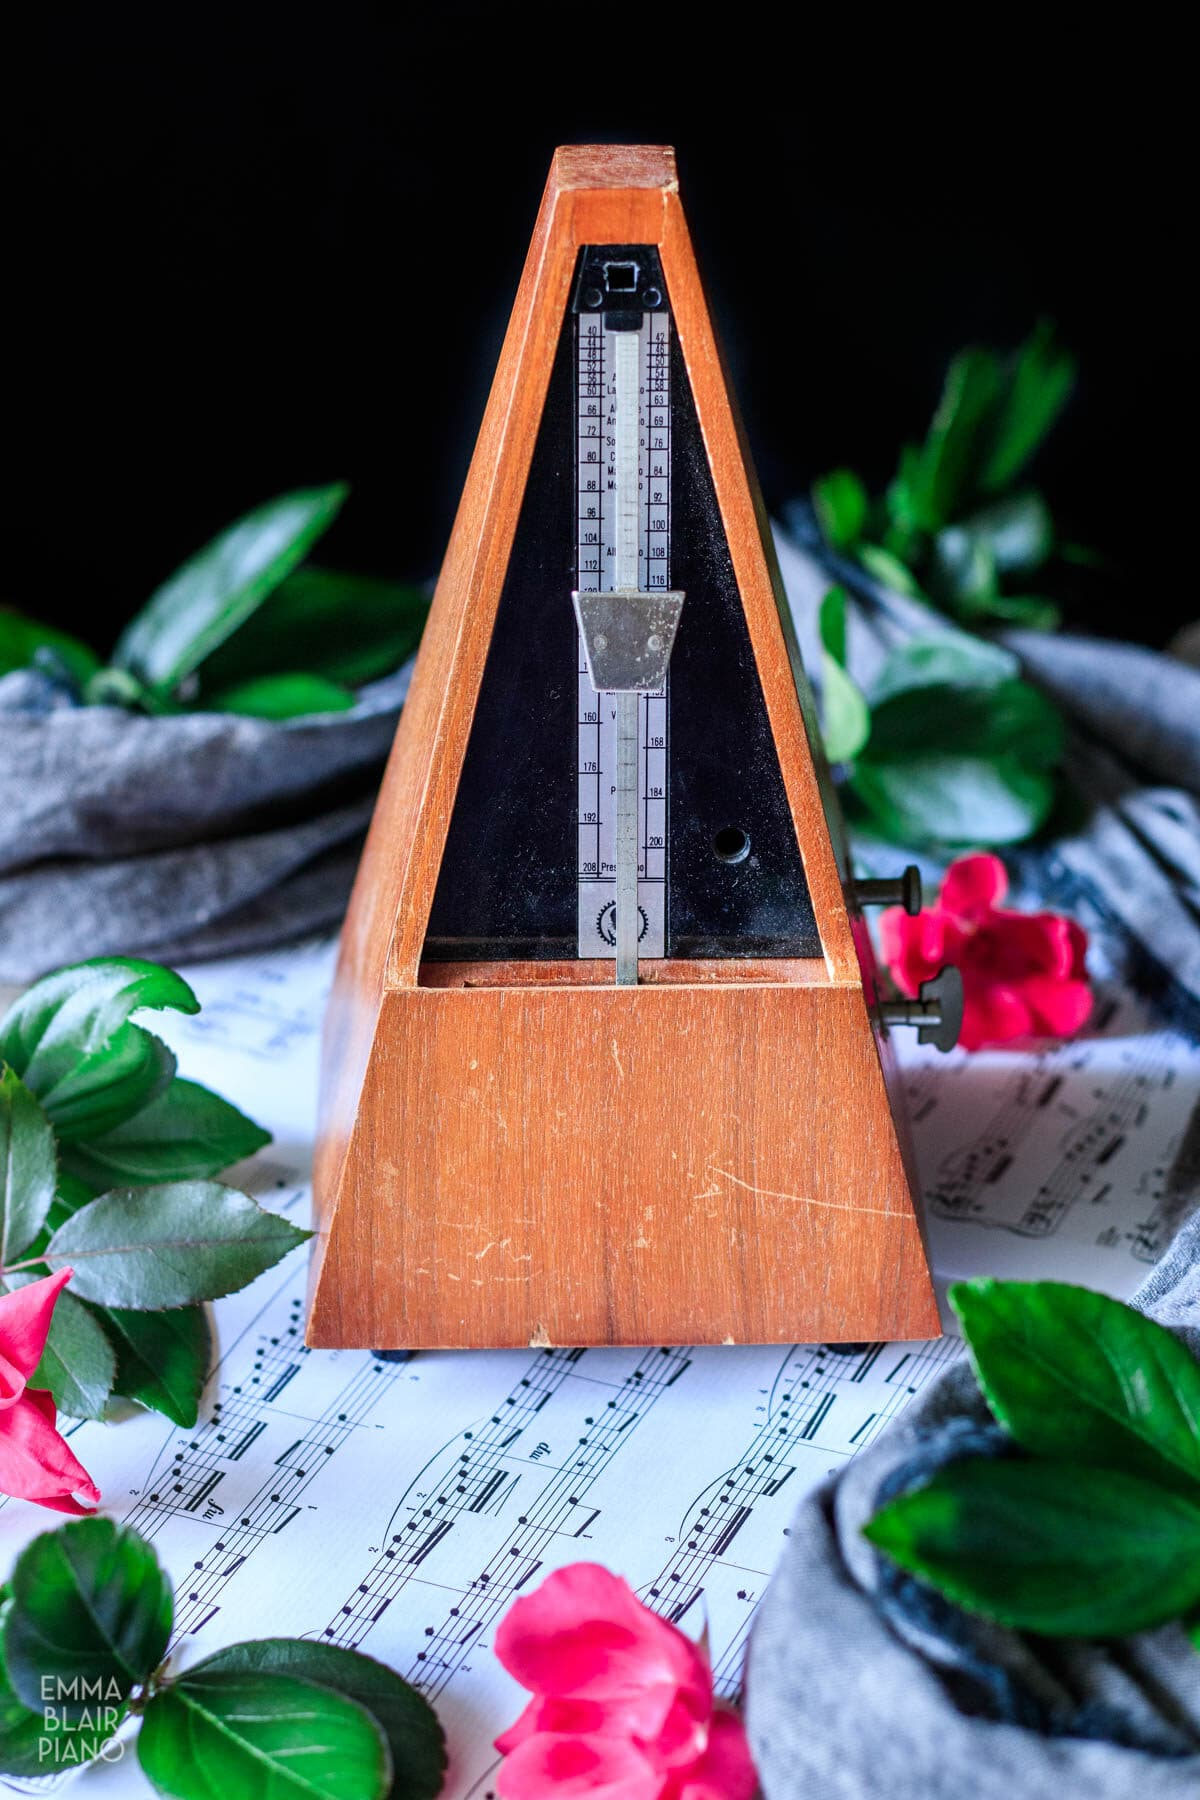 metronome and sheet music with roses